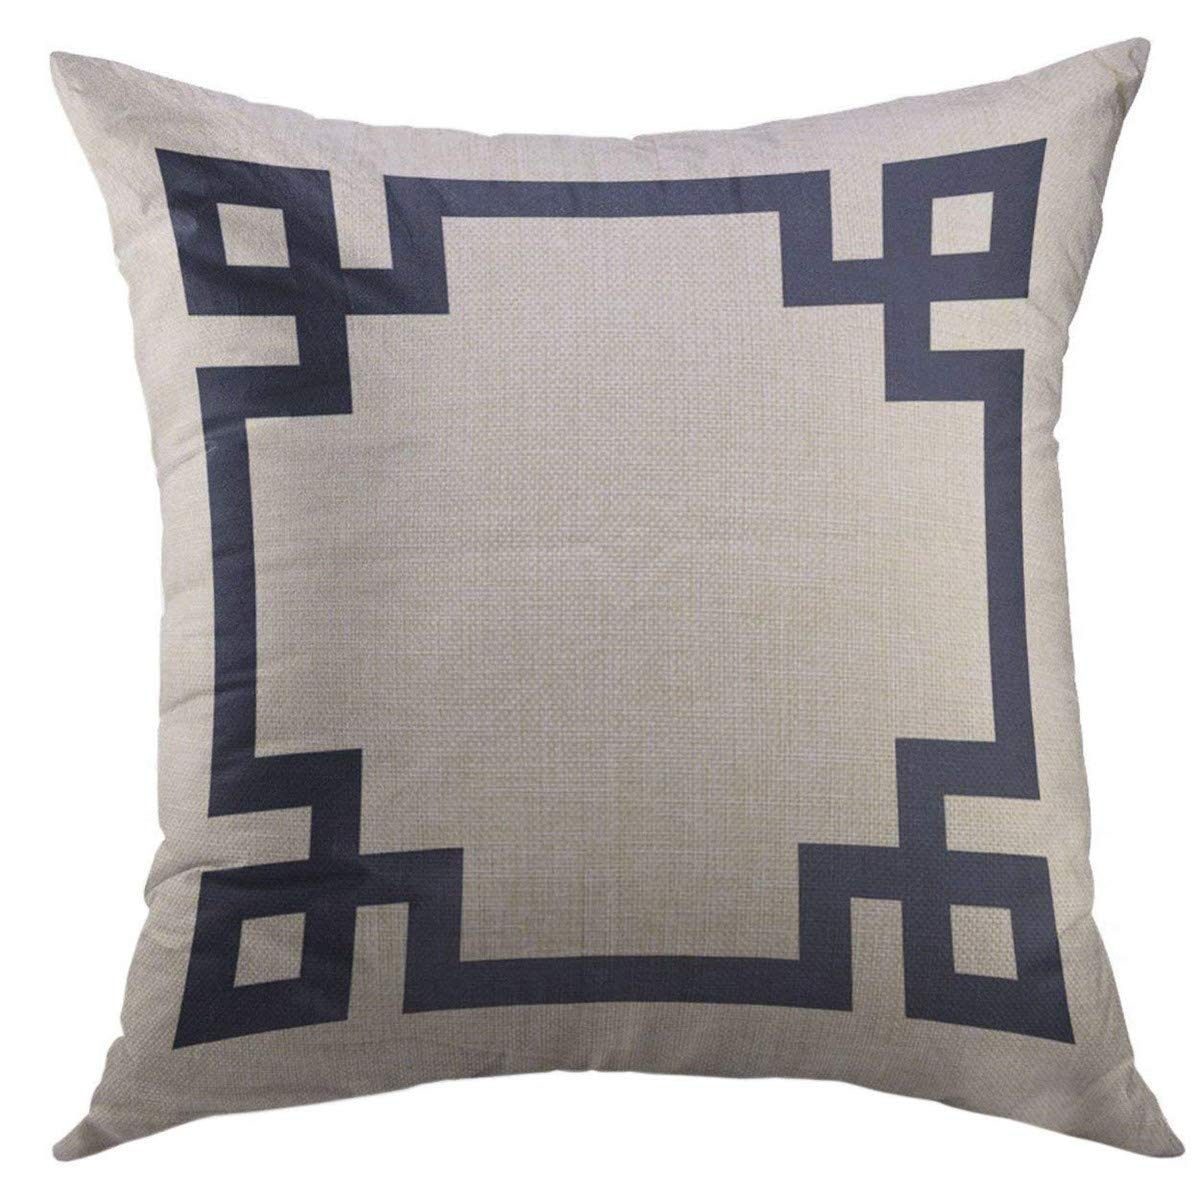 Mugod Decorative Throw Pillow Cover for Couch Sofa,Cute Preppy Navy Blue Greek Key Border Girly Home Decor Pillow case 18x18 Inch